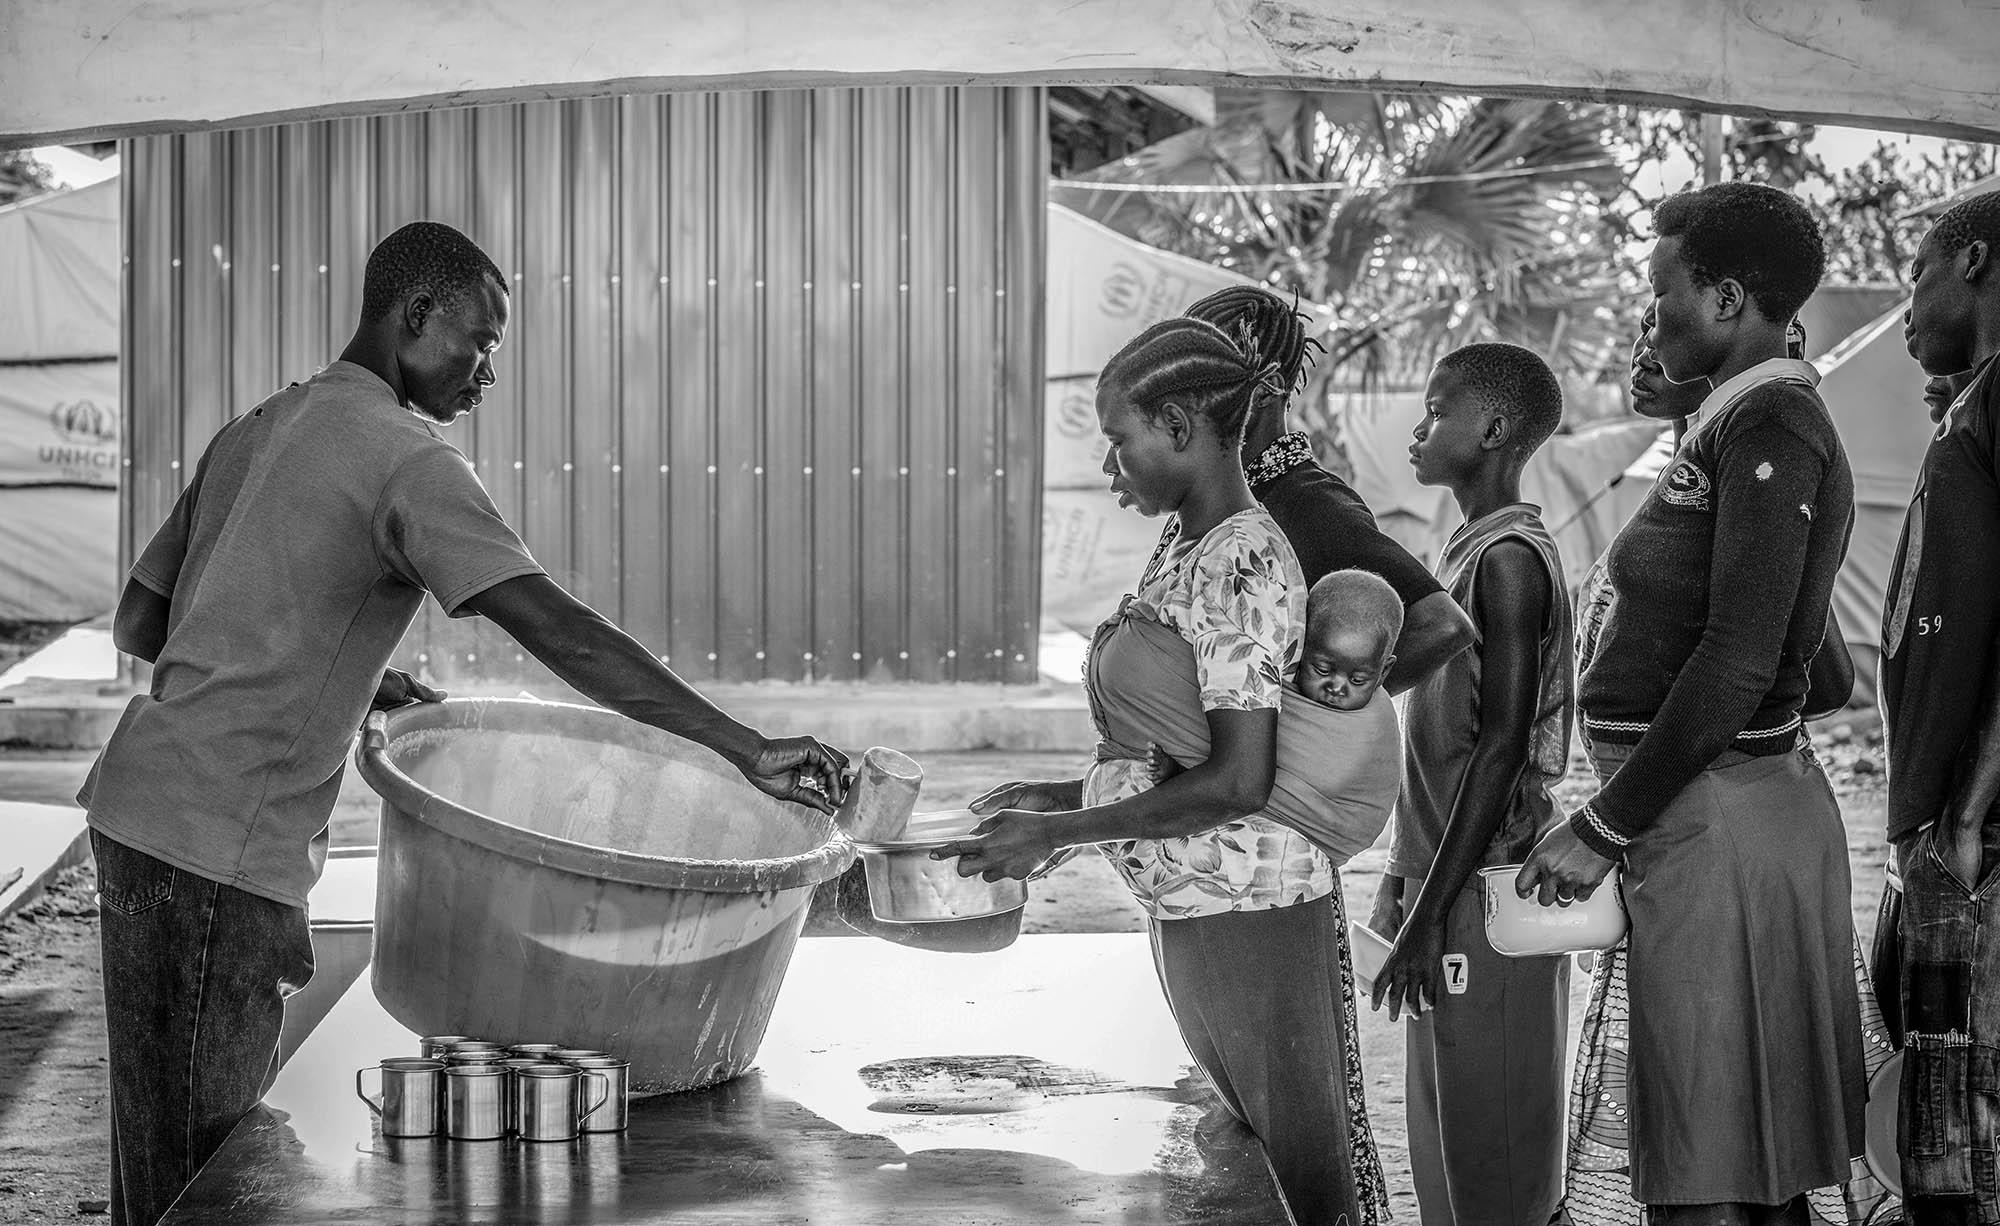 Refugees receive a hot meal at Kuluba Collection Center in Koboko District in Uganda on March 1, 2017.